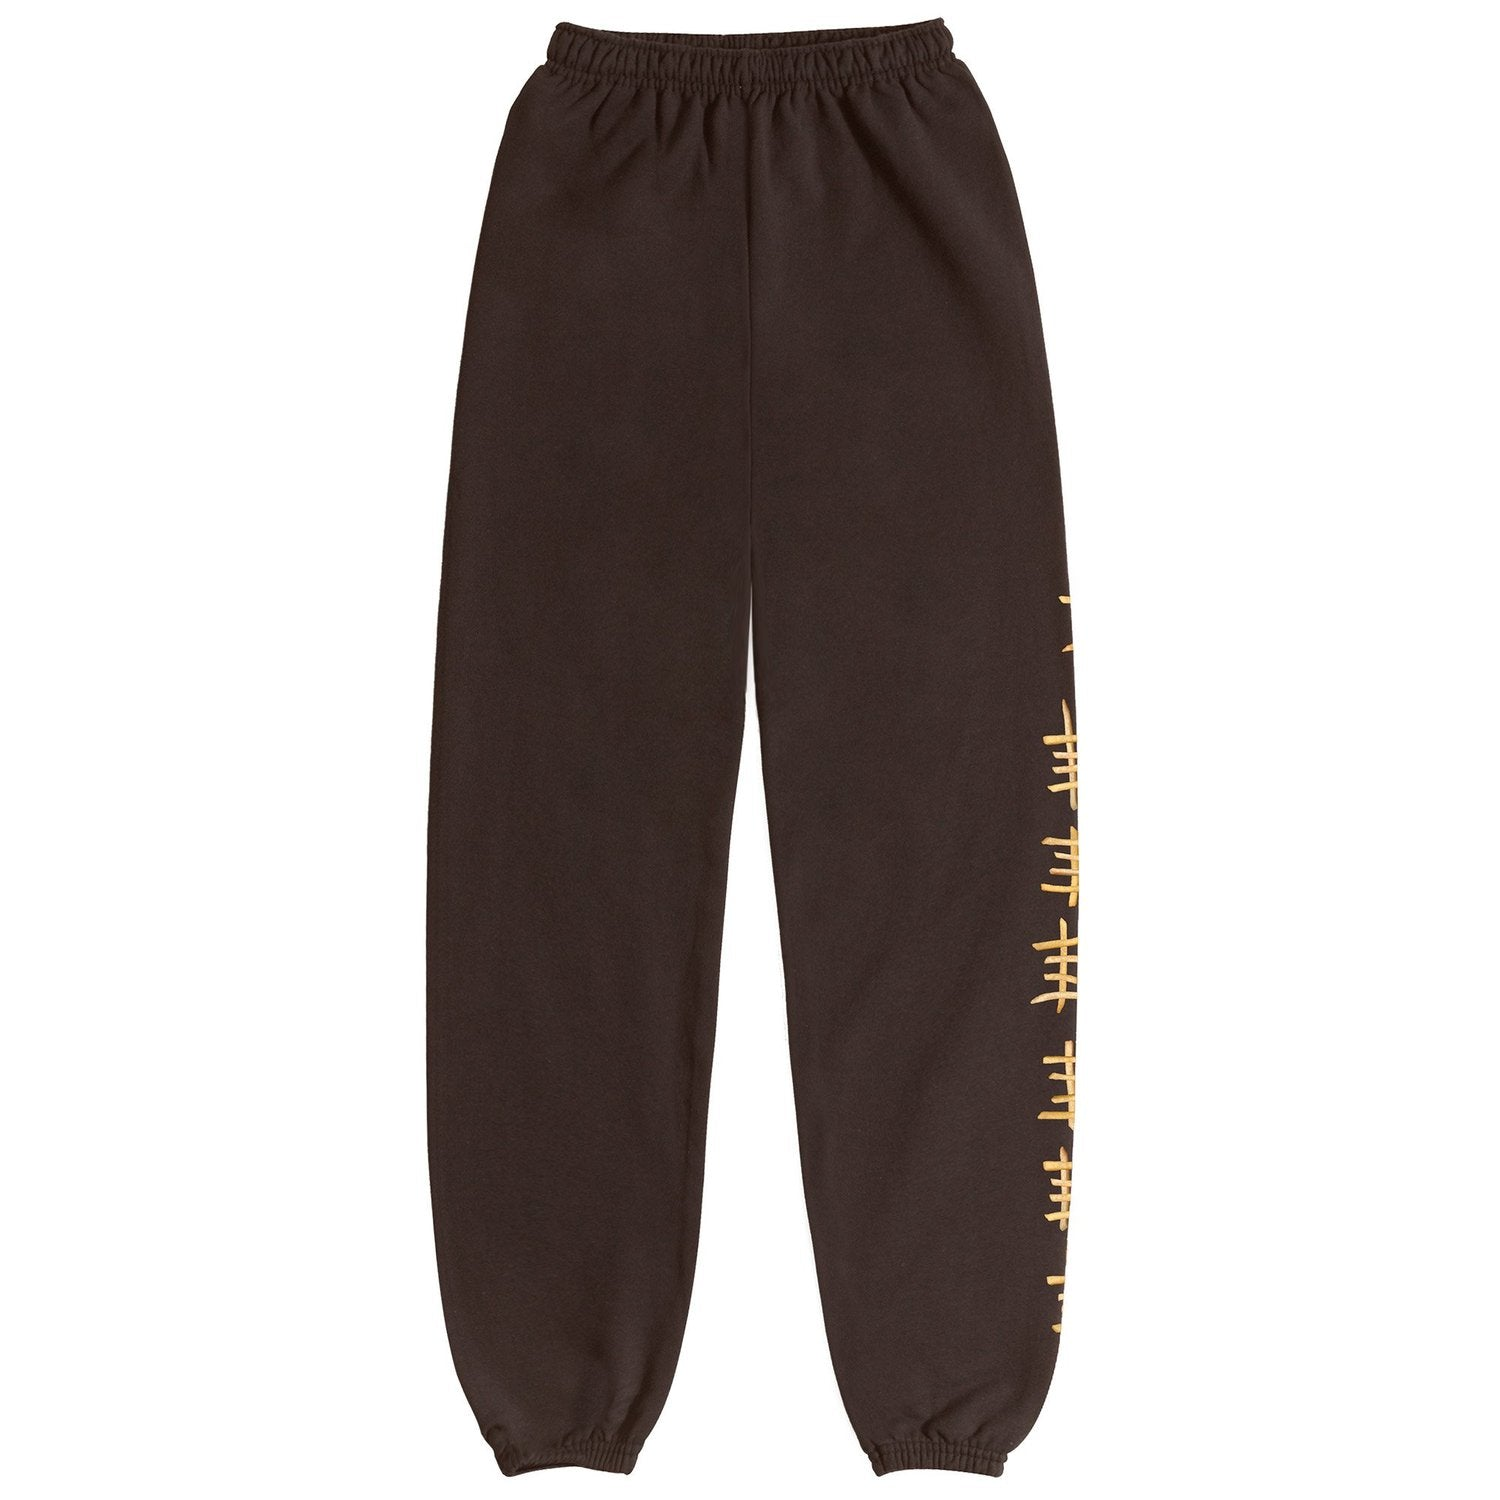 Travis Scott x McDonald's Smile Sweatpants